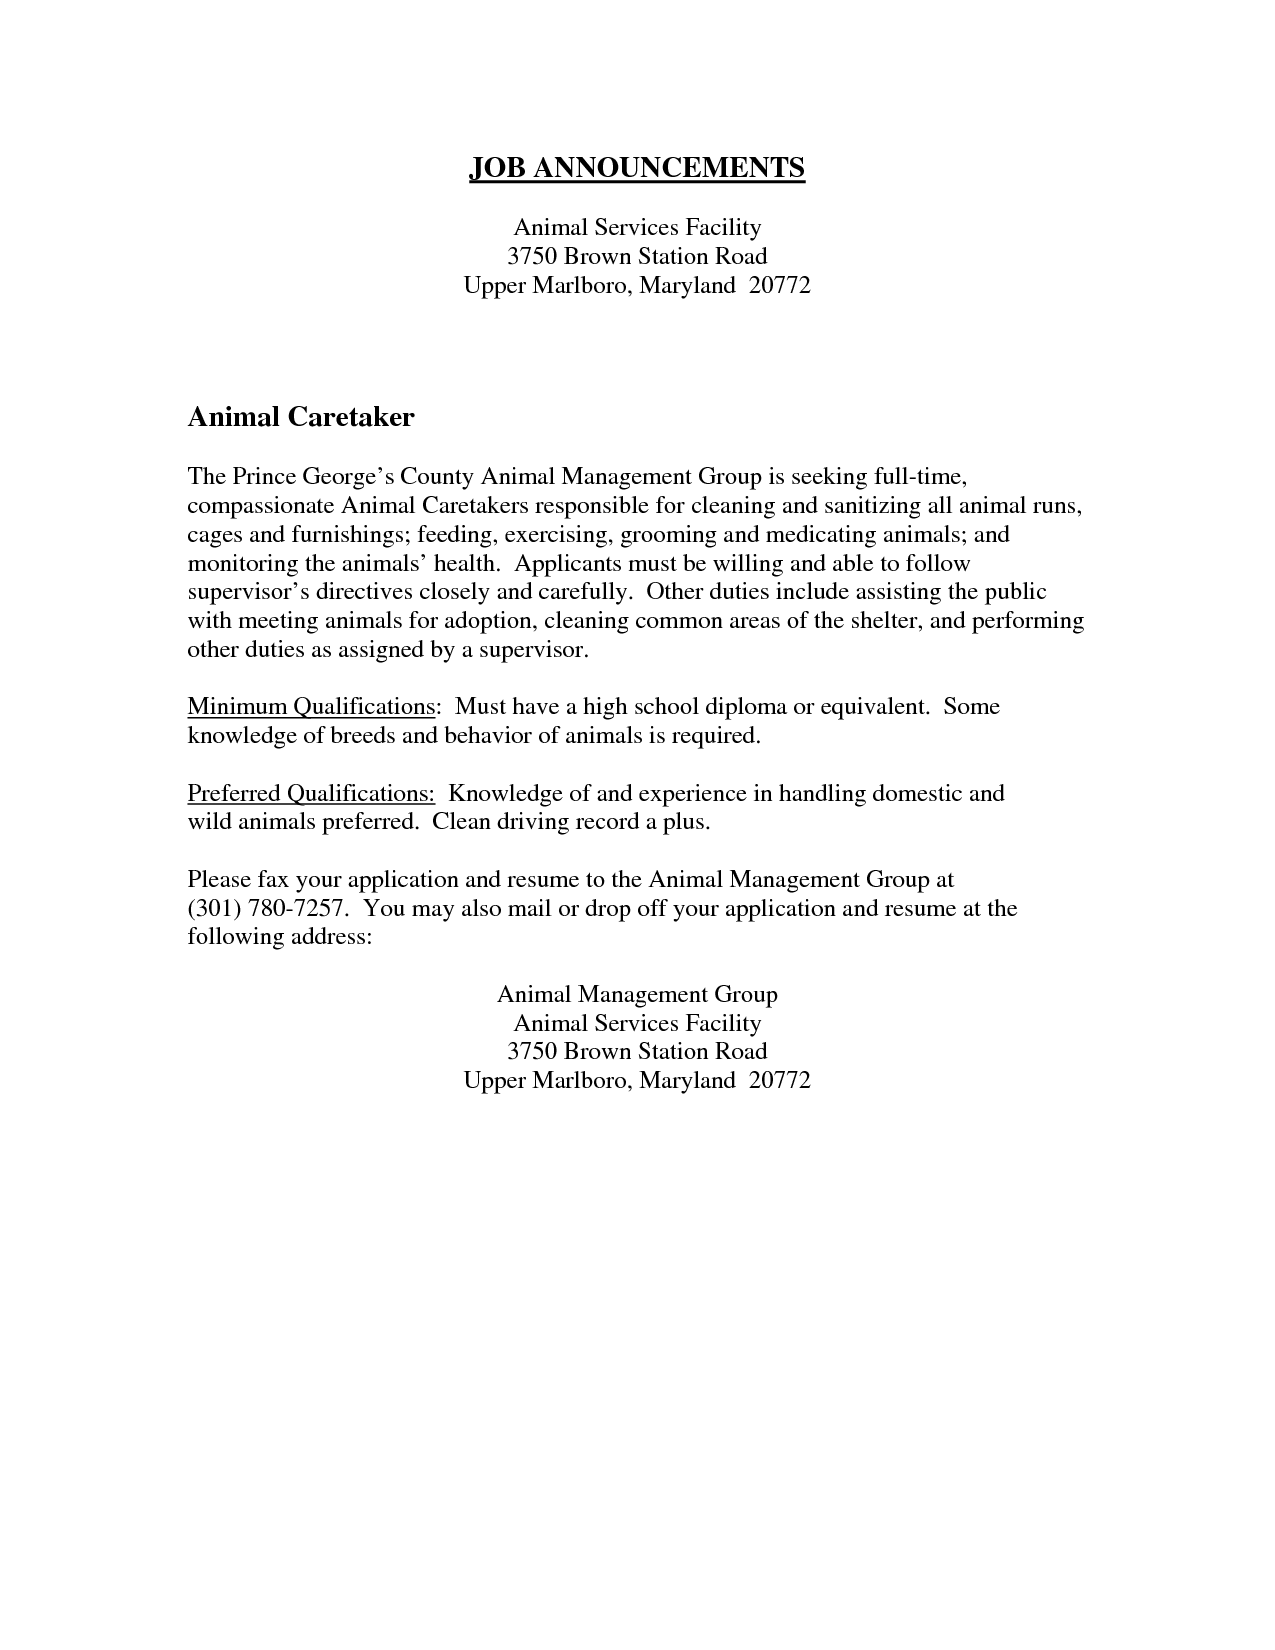 Sample Letters To Write A Cover Letter To Introduce A Resume Click Image To Read More Details Traindog Dog Care Dog Care Tips Writing A Cover Letter